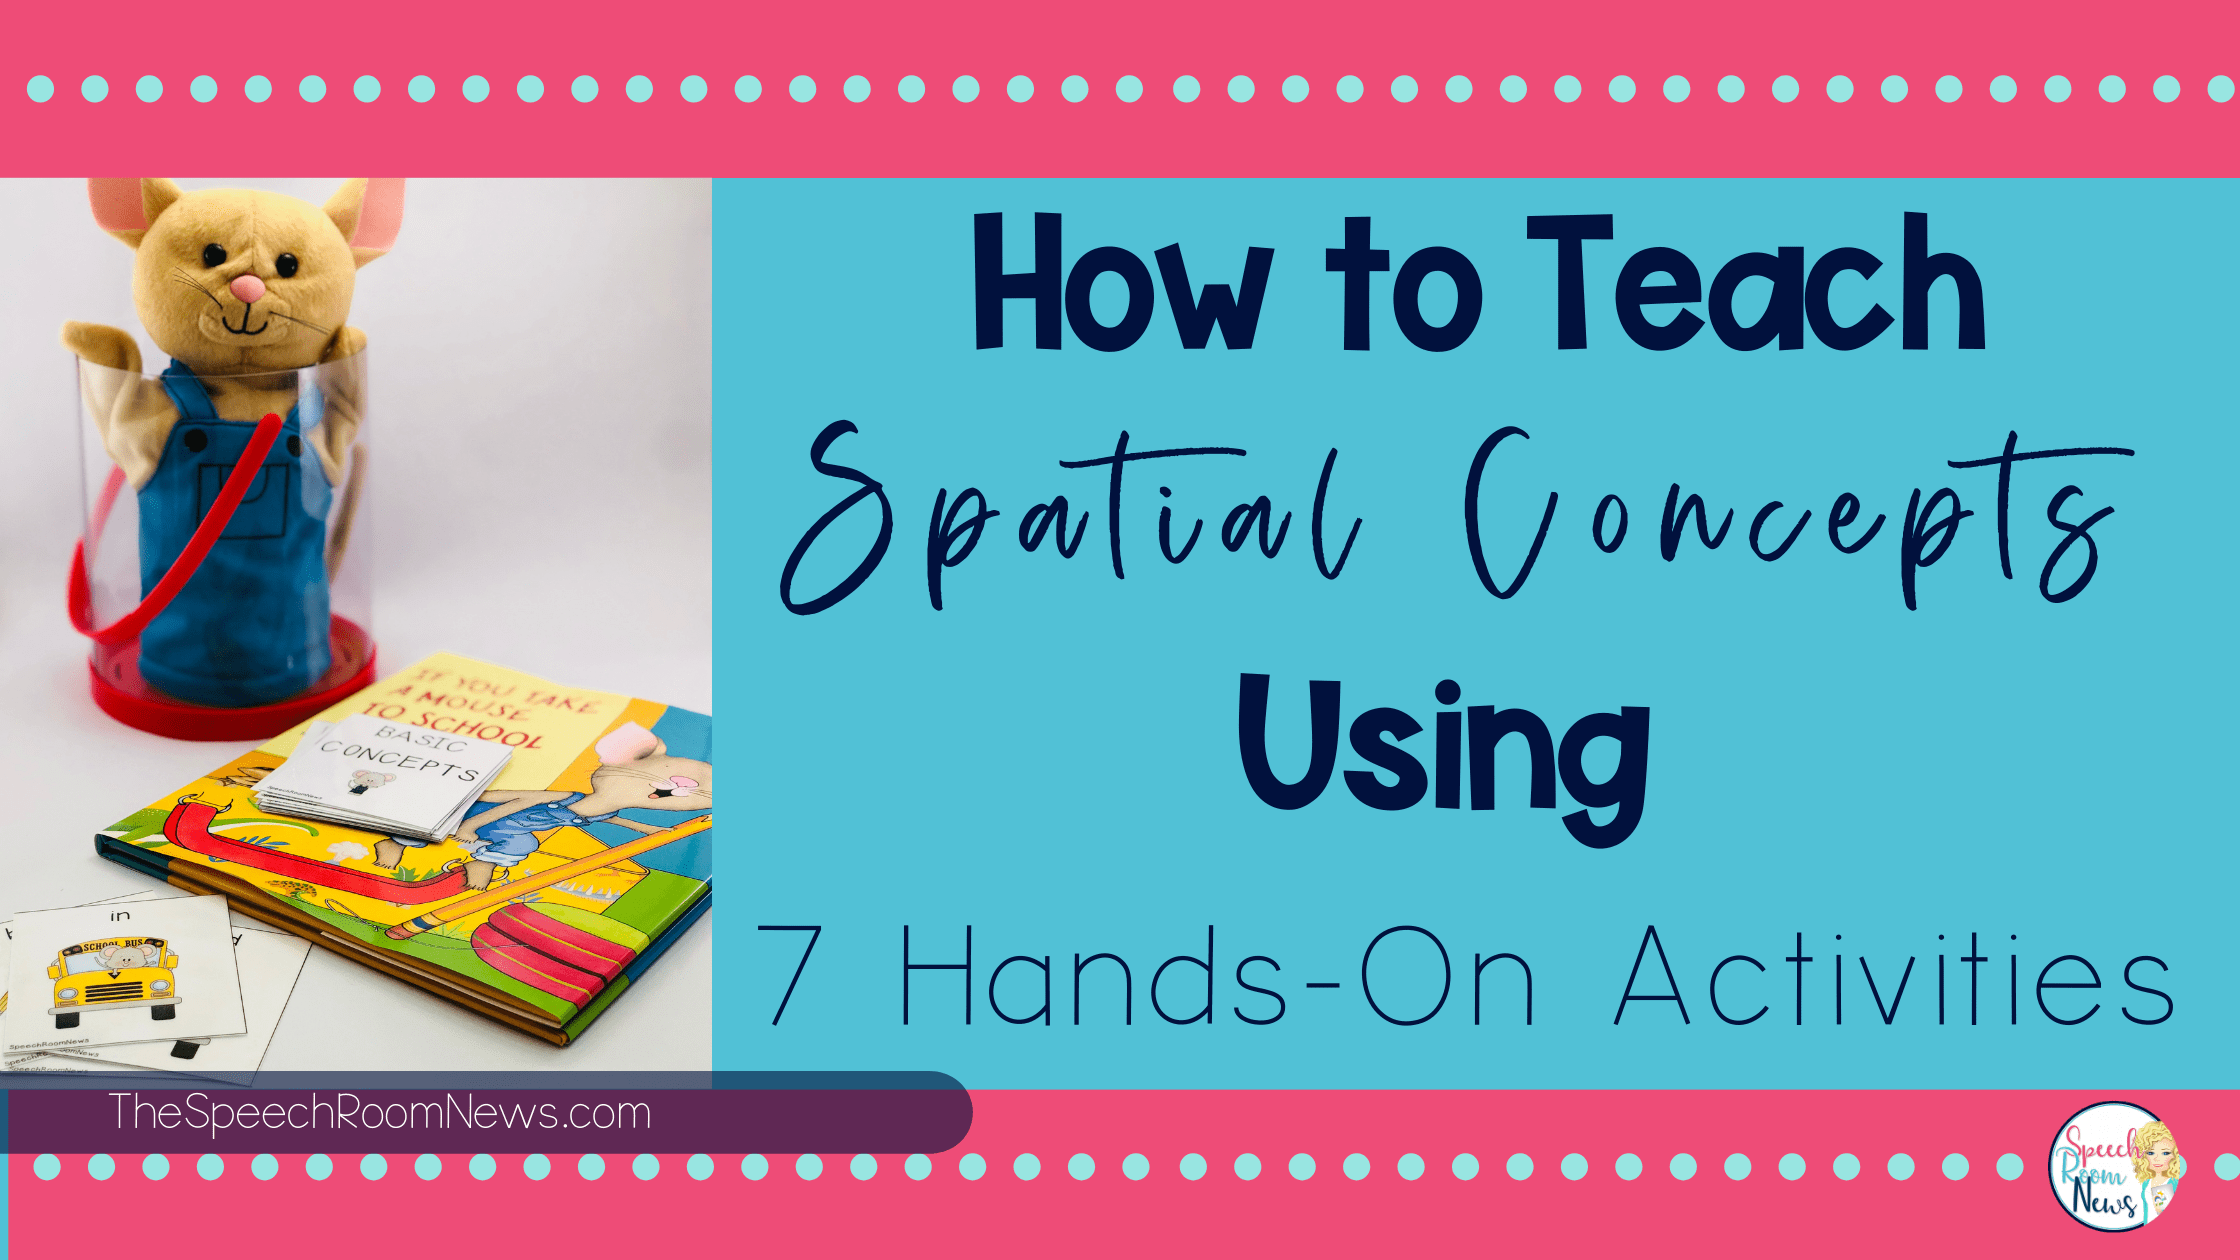 How To Teach Spatial Concepts Using 7 Hands On Activities